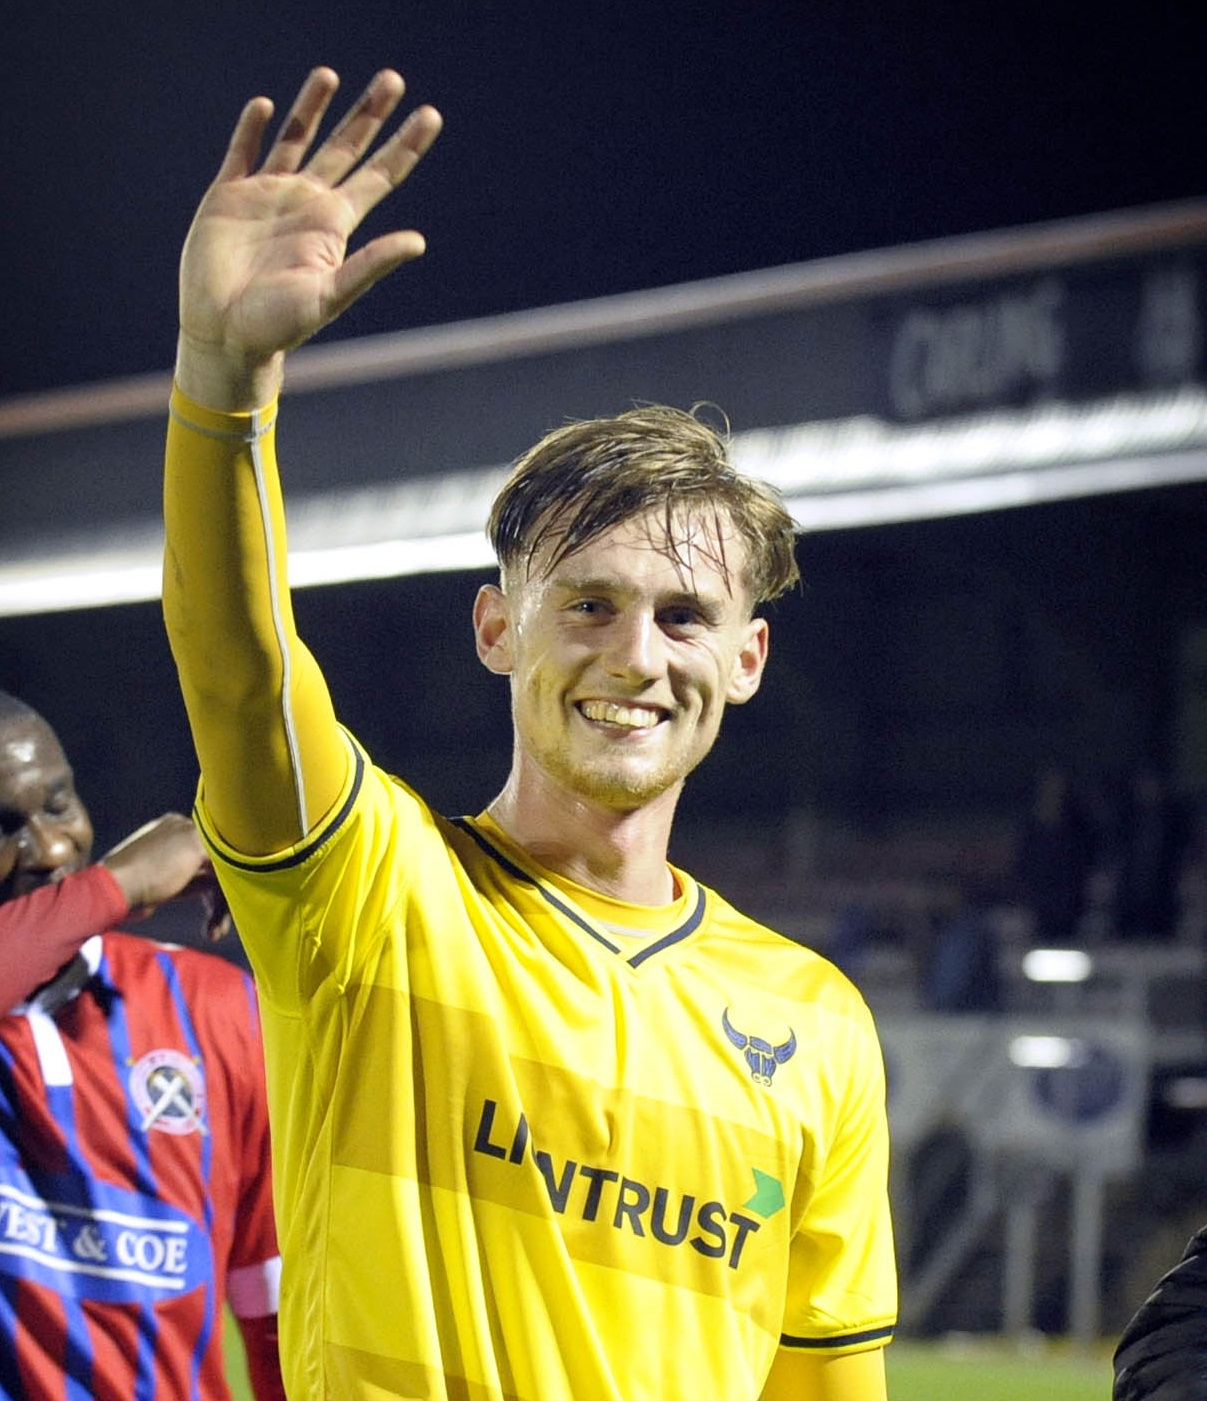 Robbie Cundy on his sole Oxford United appearance at Dagenham Picture: David Fleming